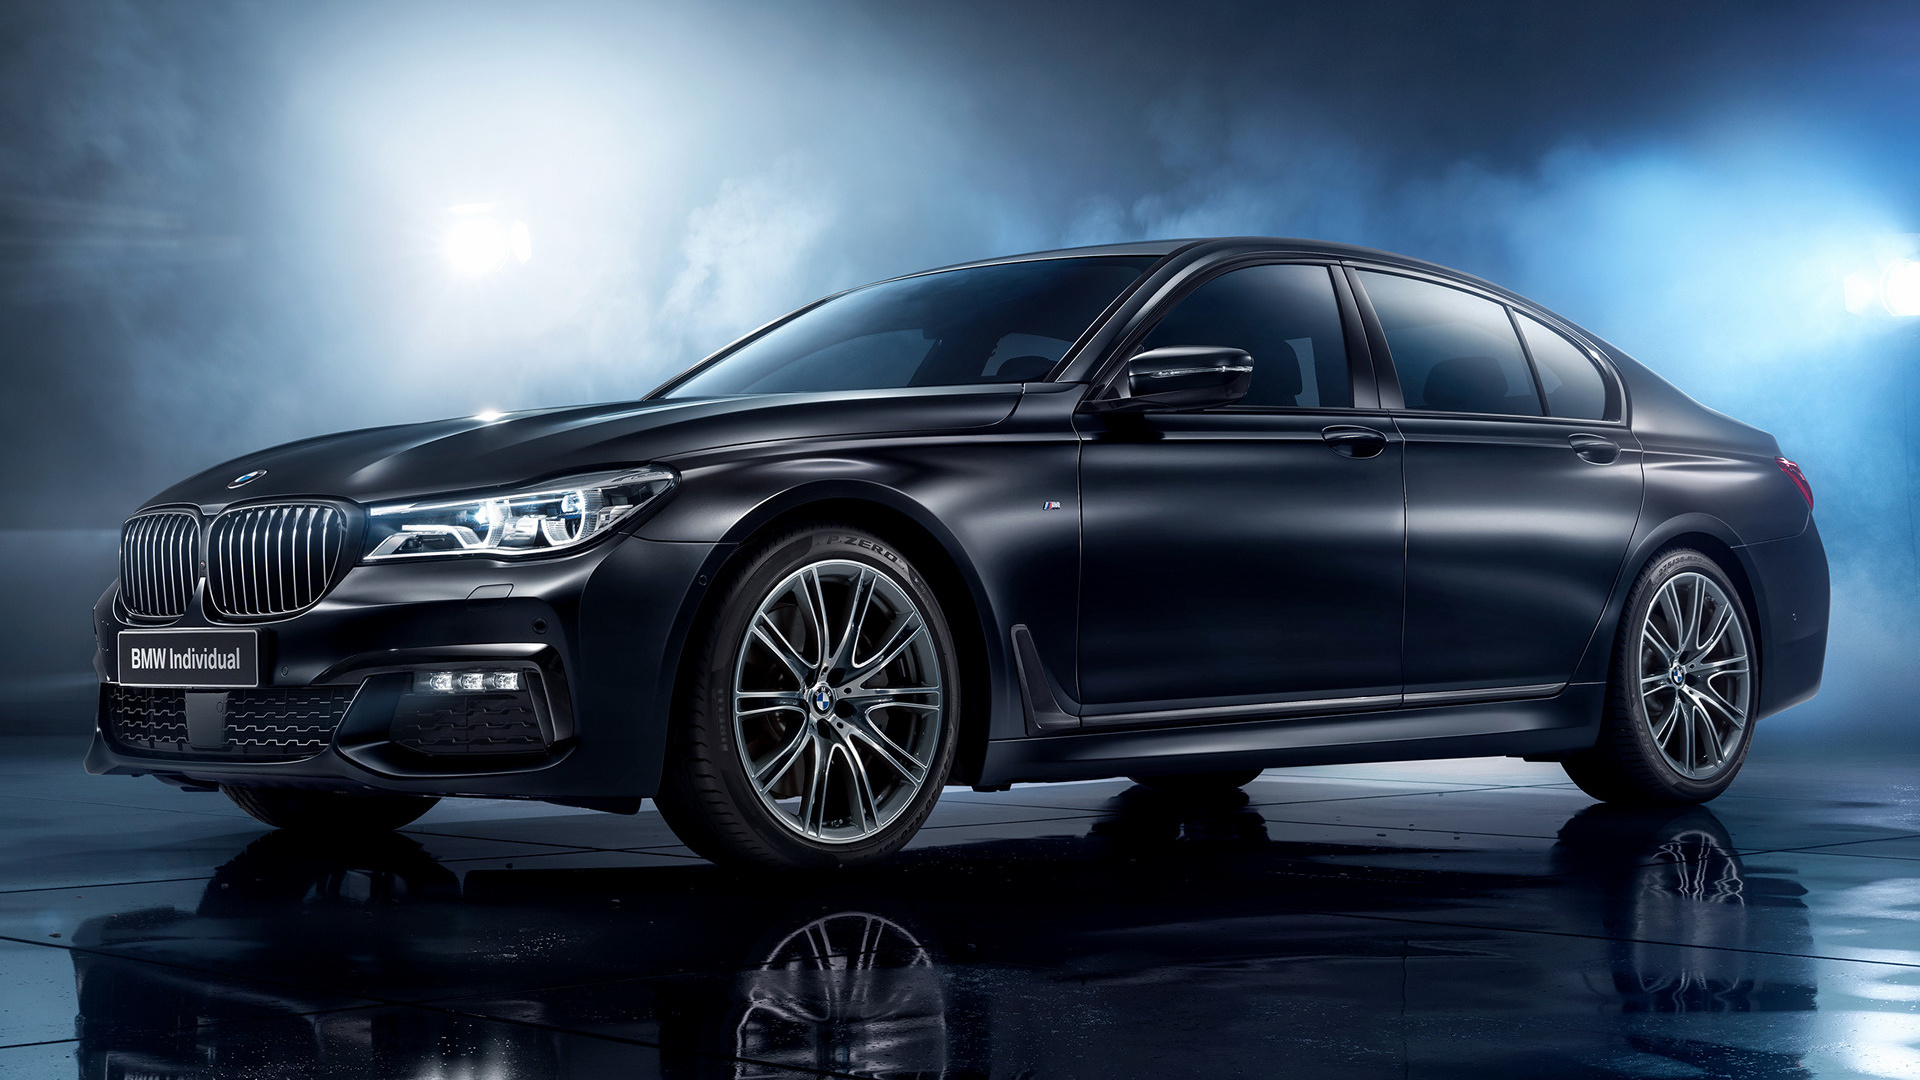 2017 BMW 7 Series Black Ice Edition (RU) - Wallpapers and ...